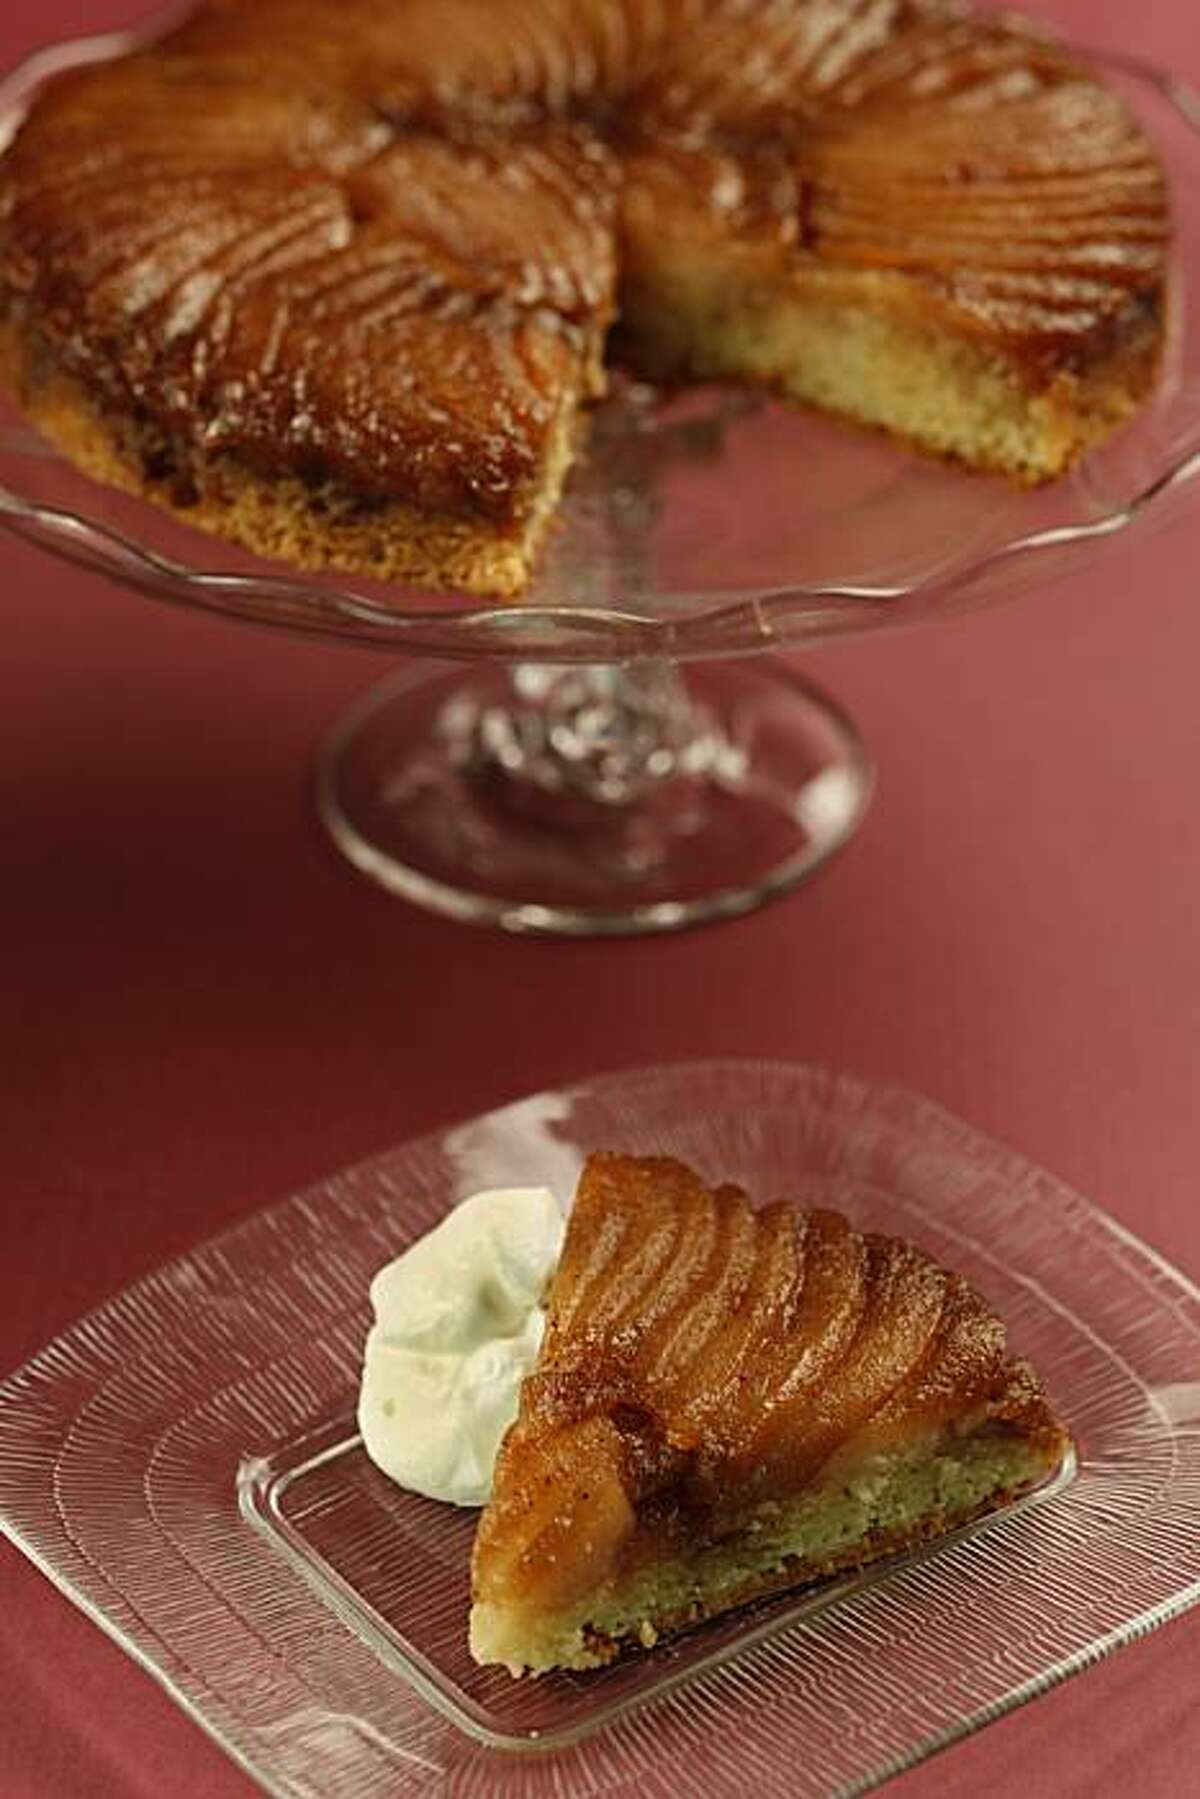 Cinnamon Poached Upside-Down Pear Cake in San Francisco, Calif., on November 24, 2009. Food styled by Amanda Gold.